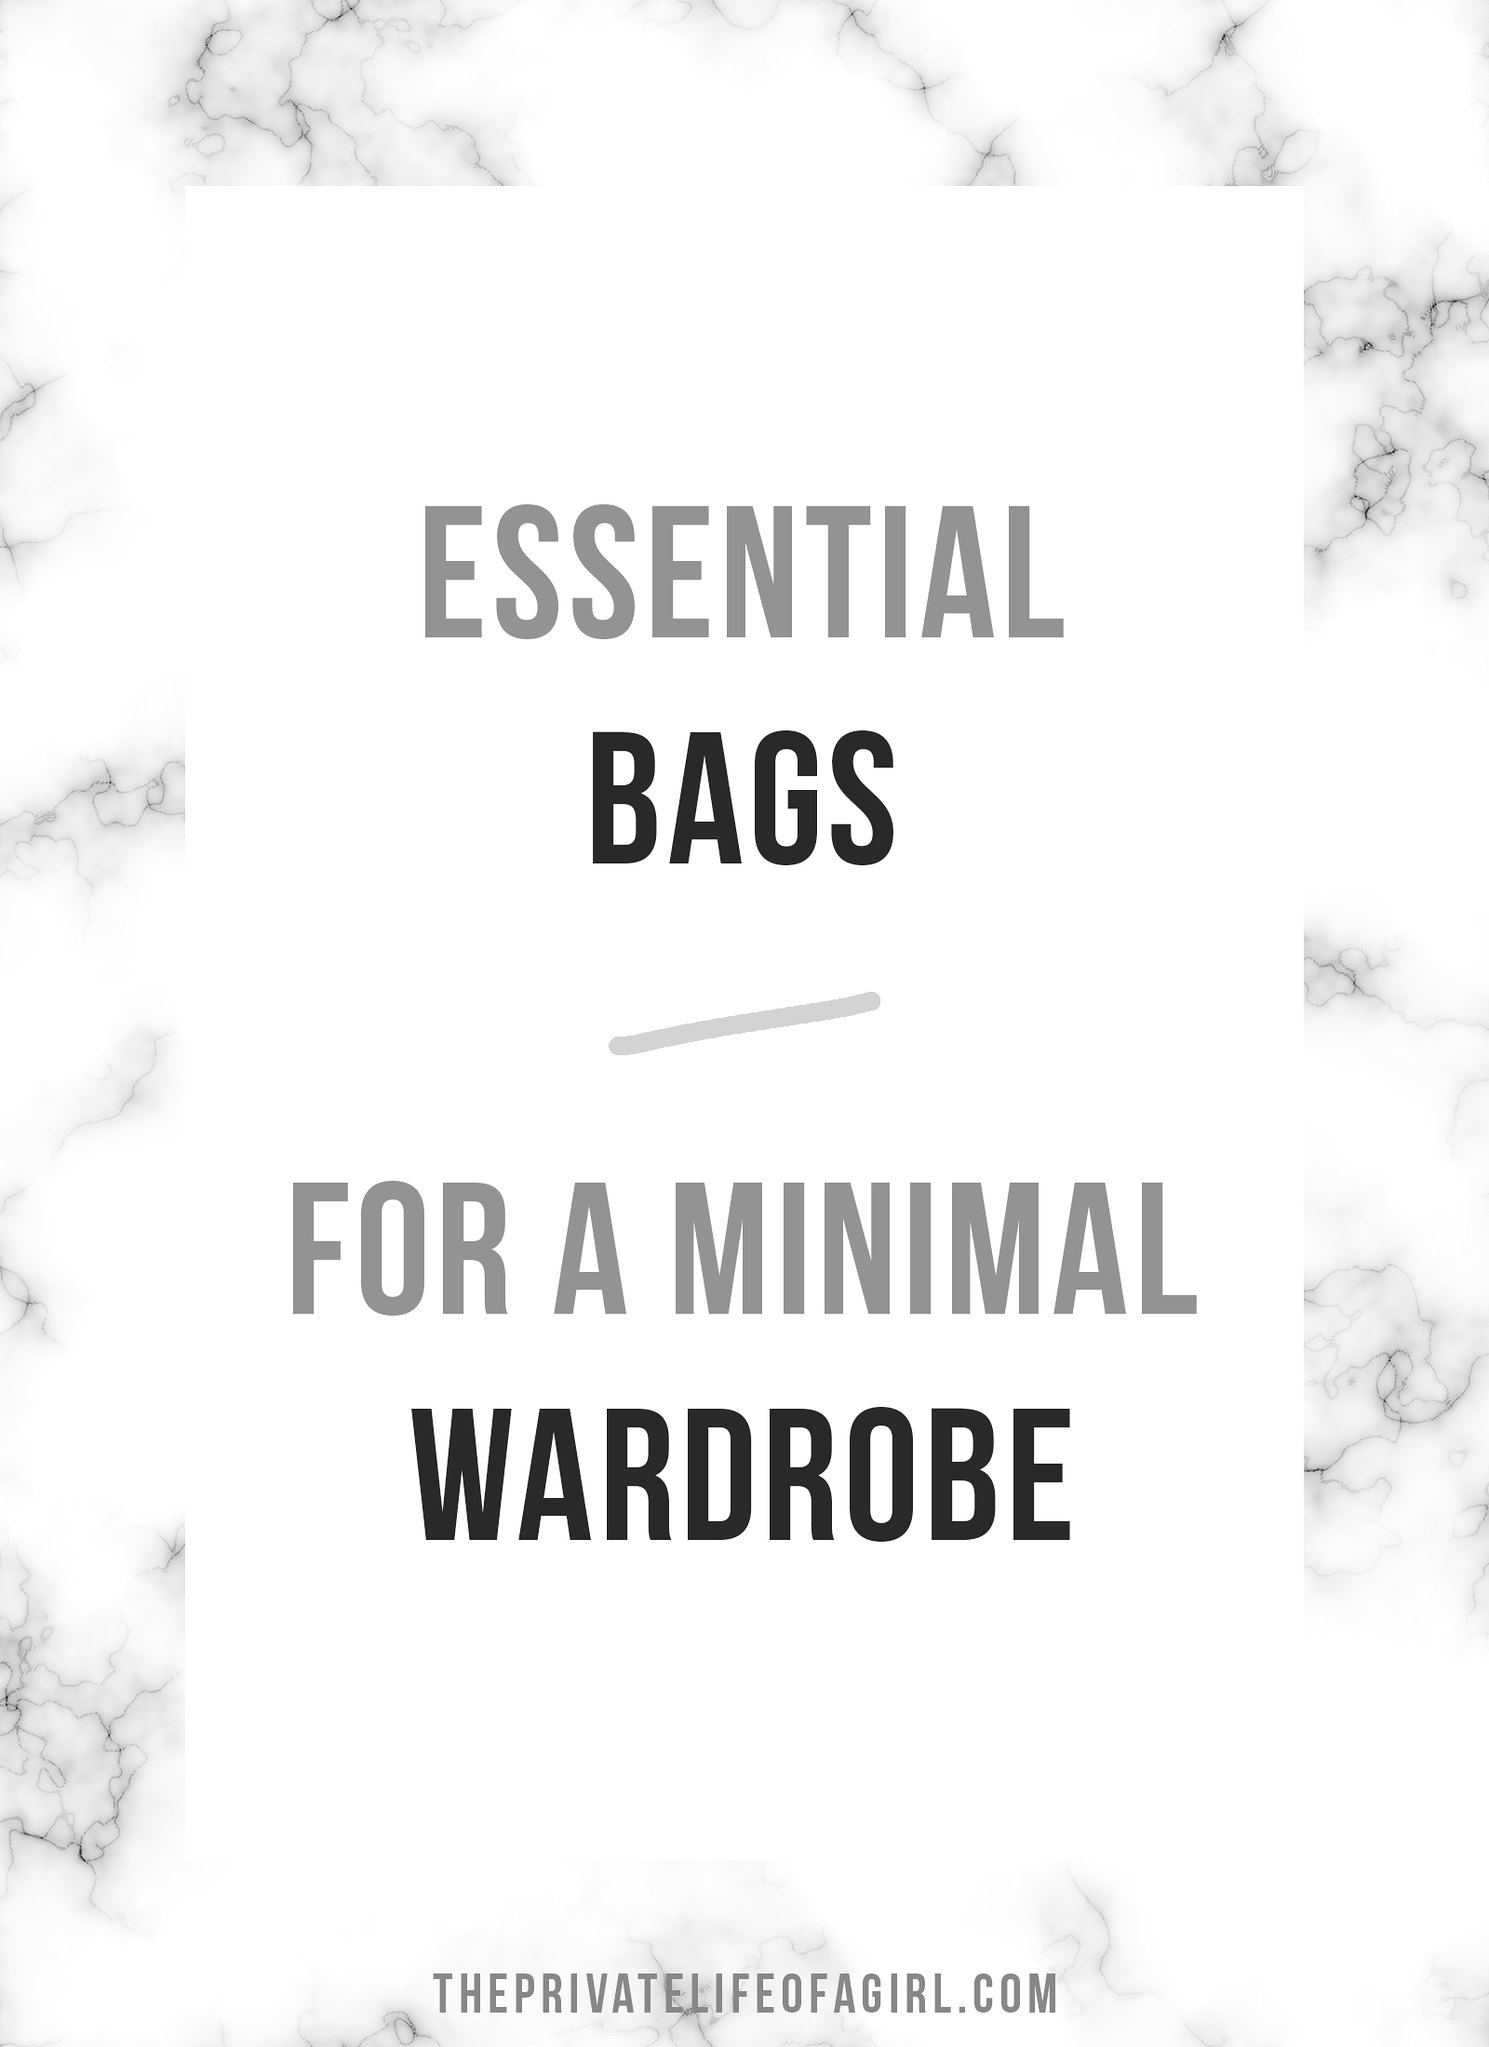 Essential Bags for a Minimal Wardrobe